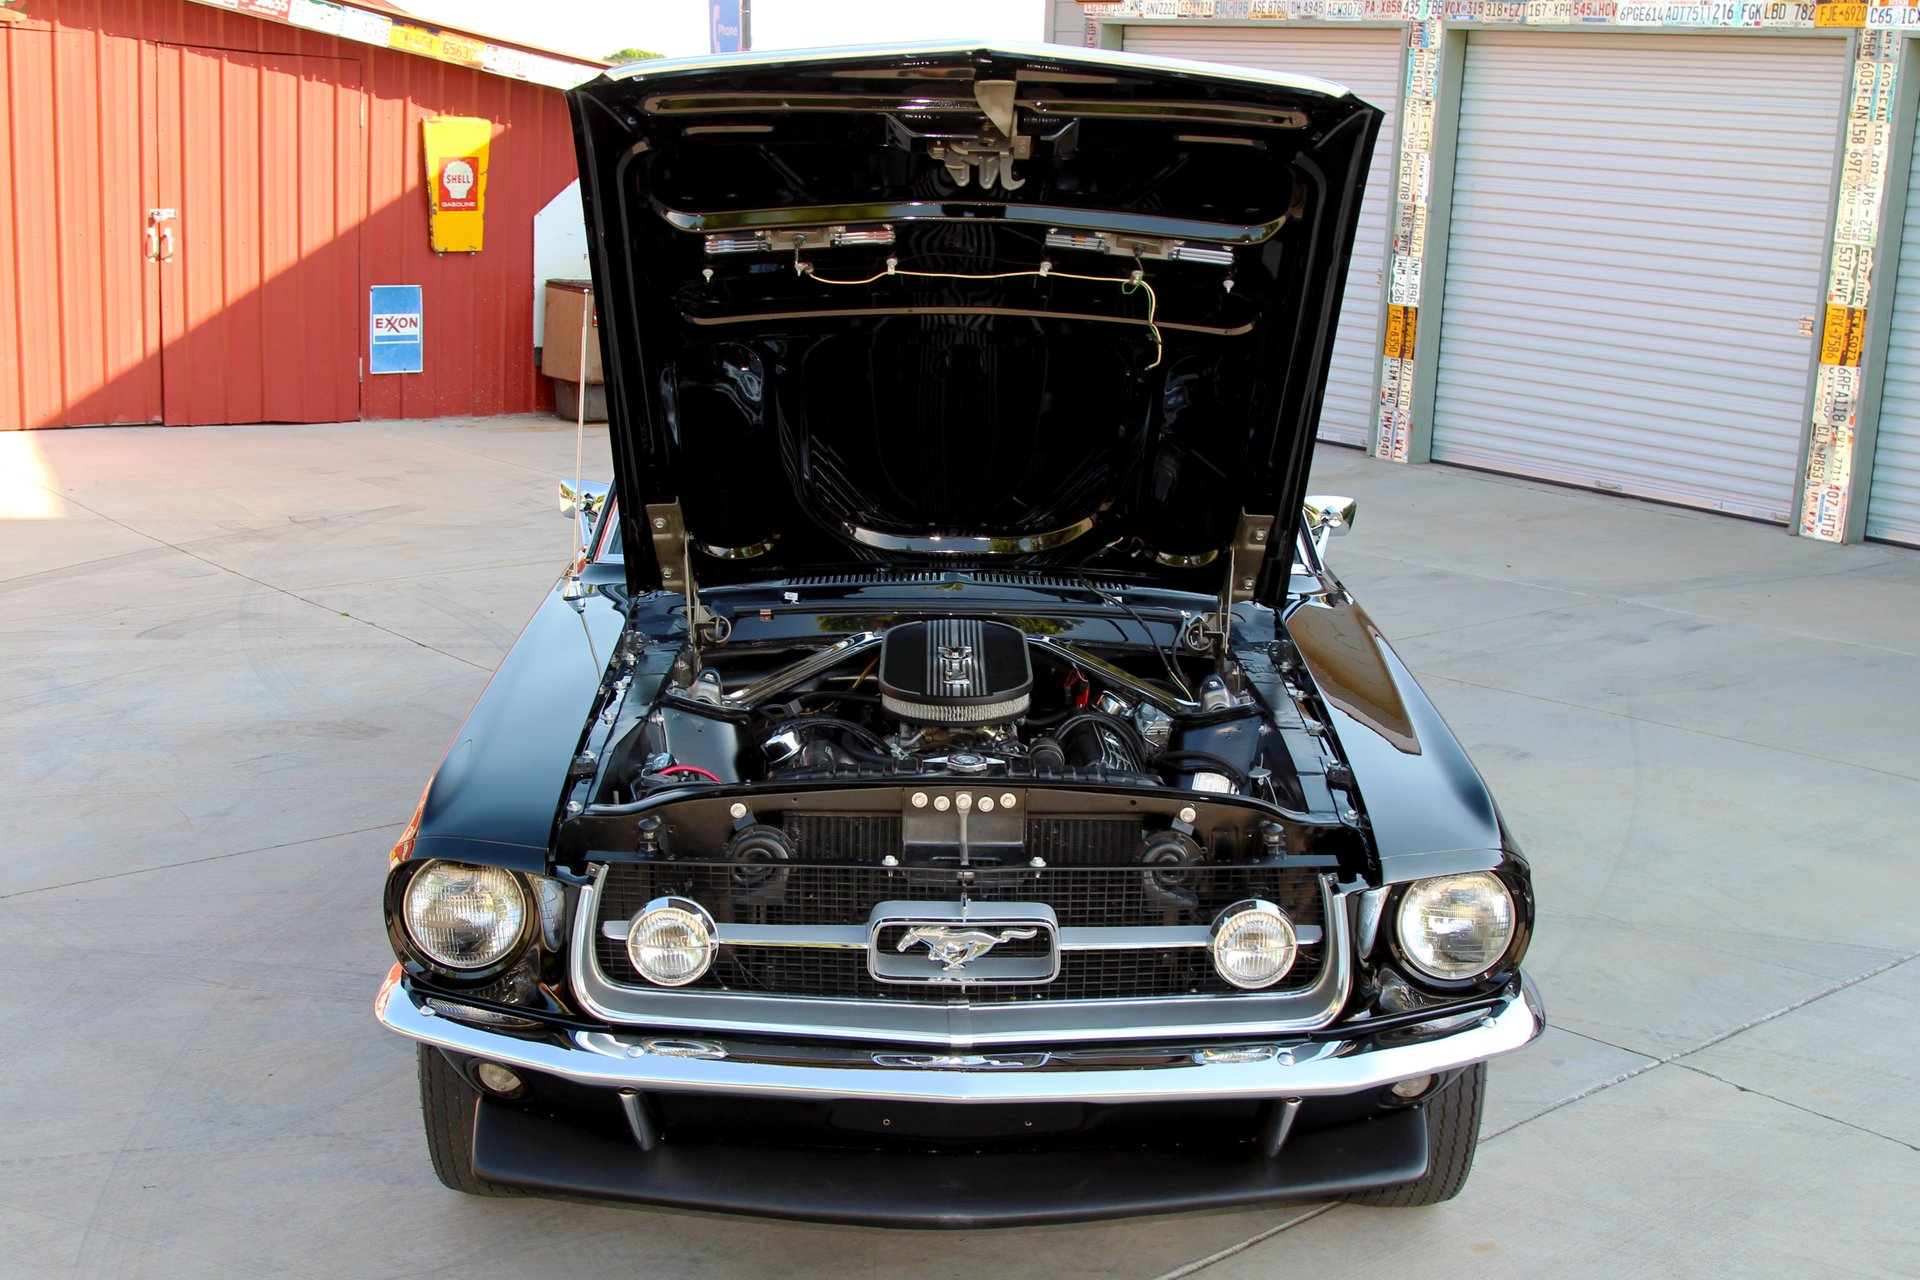 1967 Ford Mustang GT 390 for sale #51000   MCG